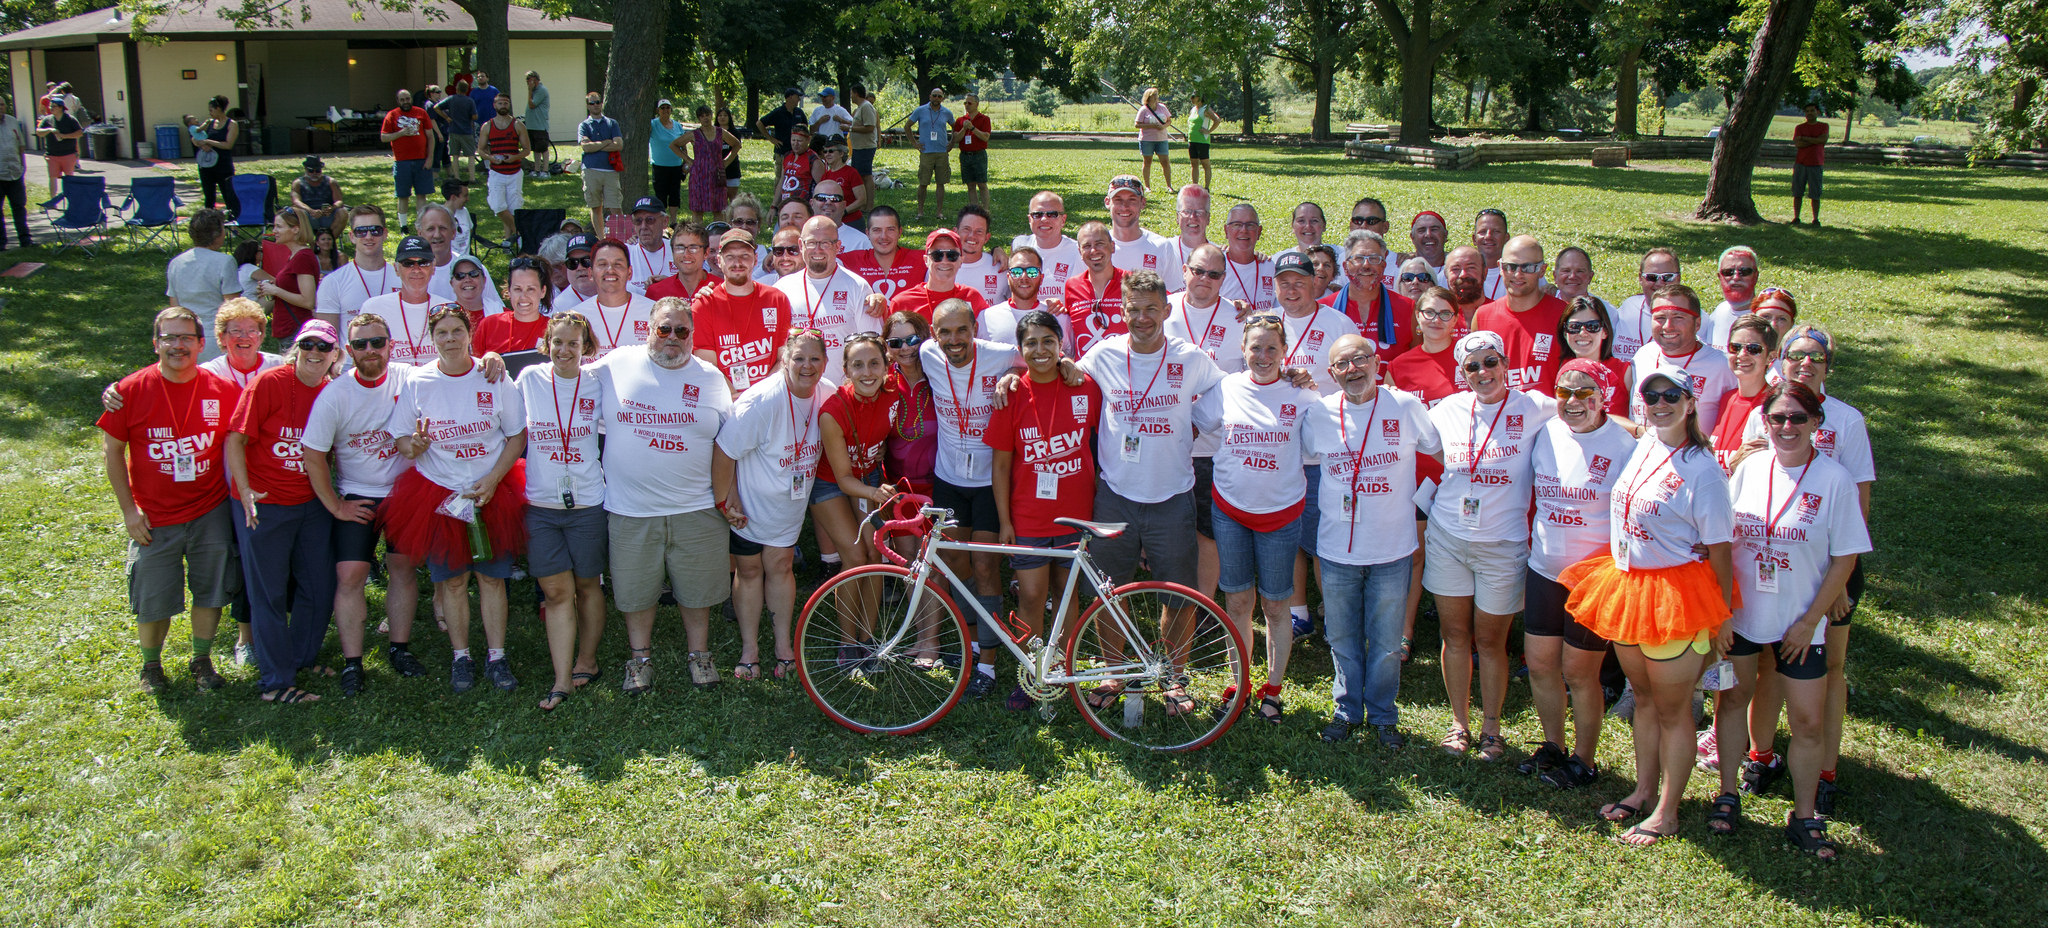 wis aids rides 2016 closing ceremonies.jpg